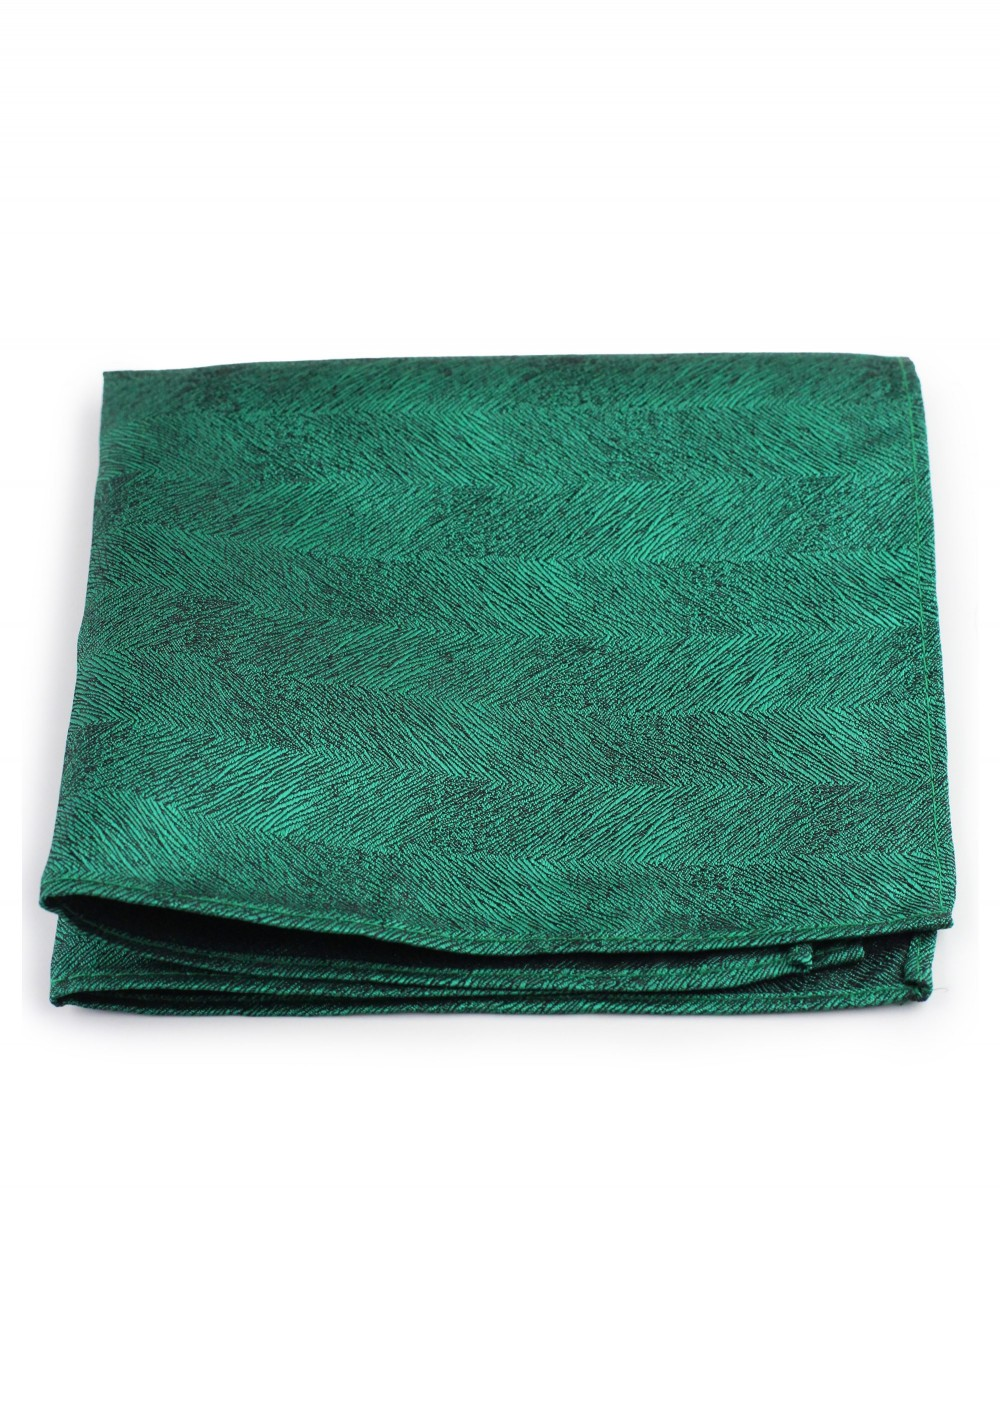 Woon Grain Textured Pocket Square in Green